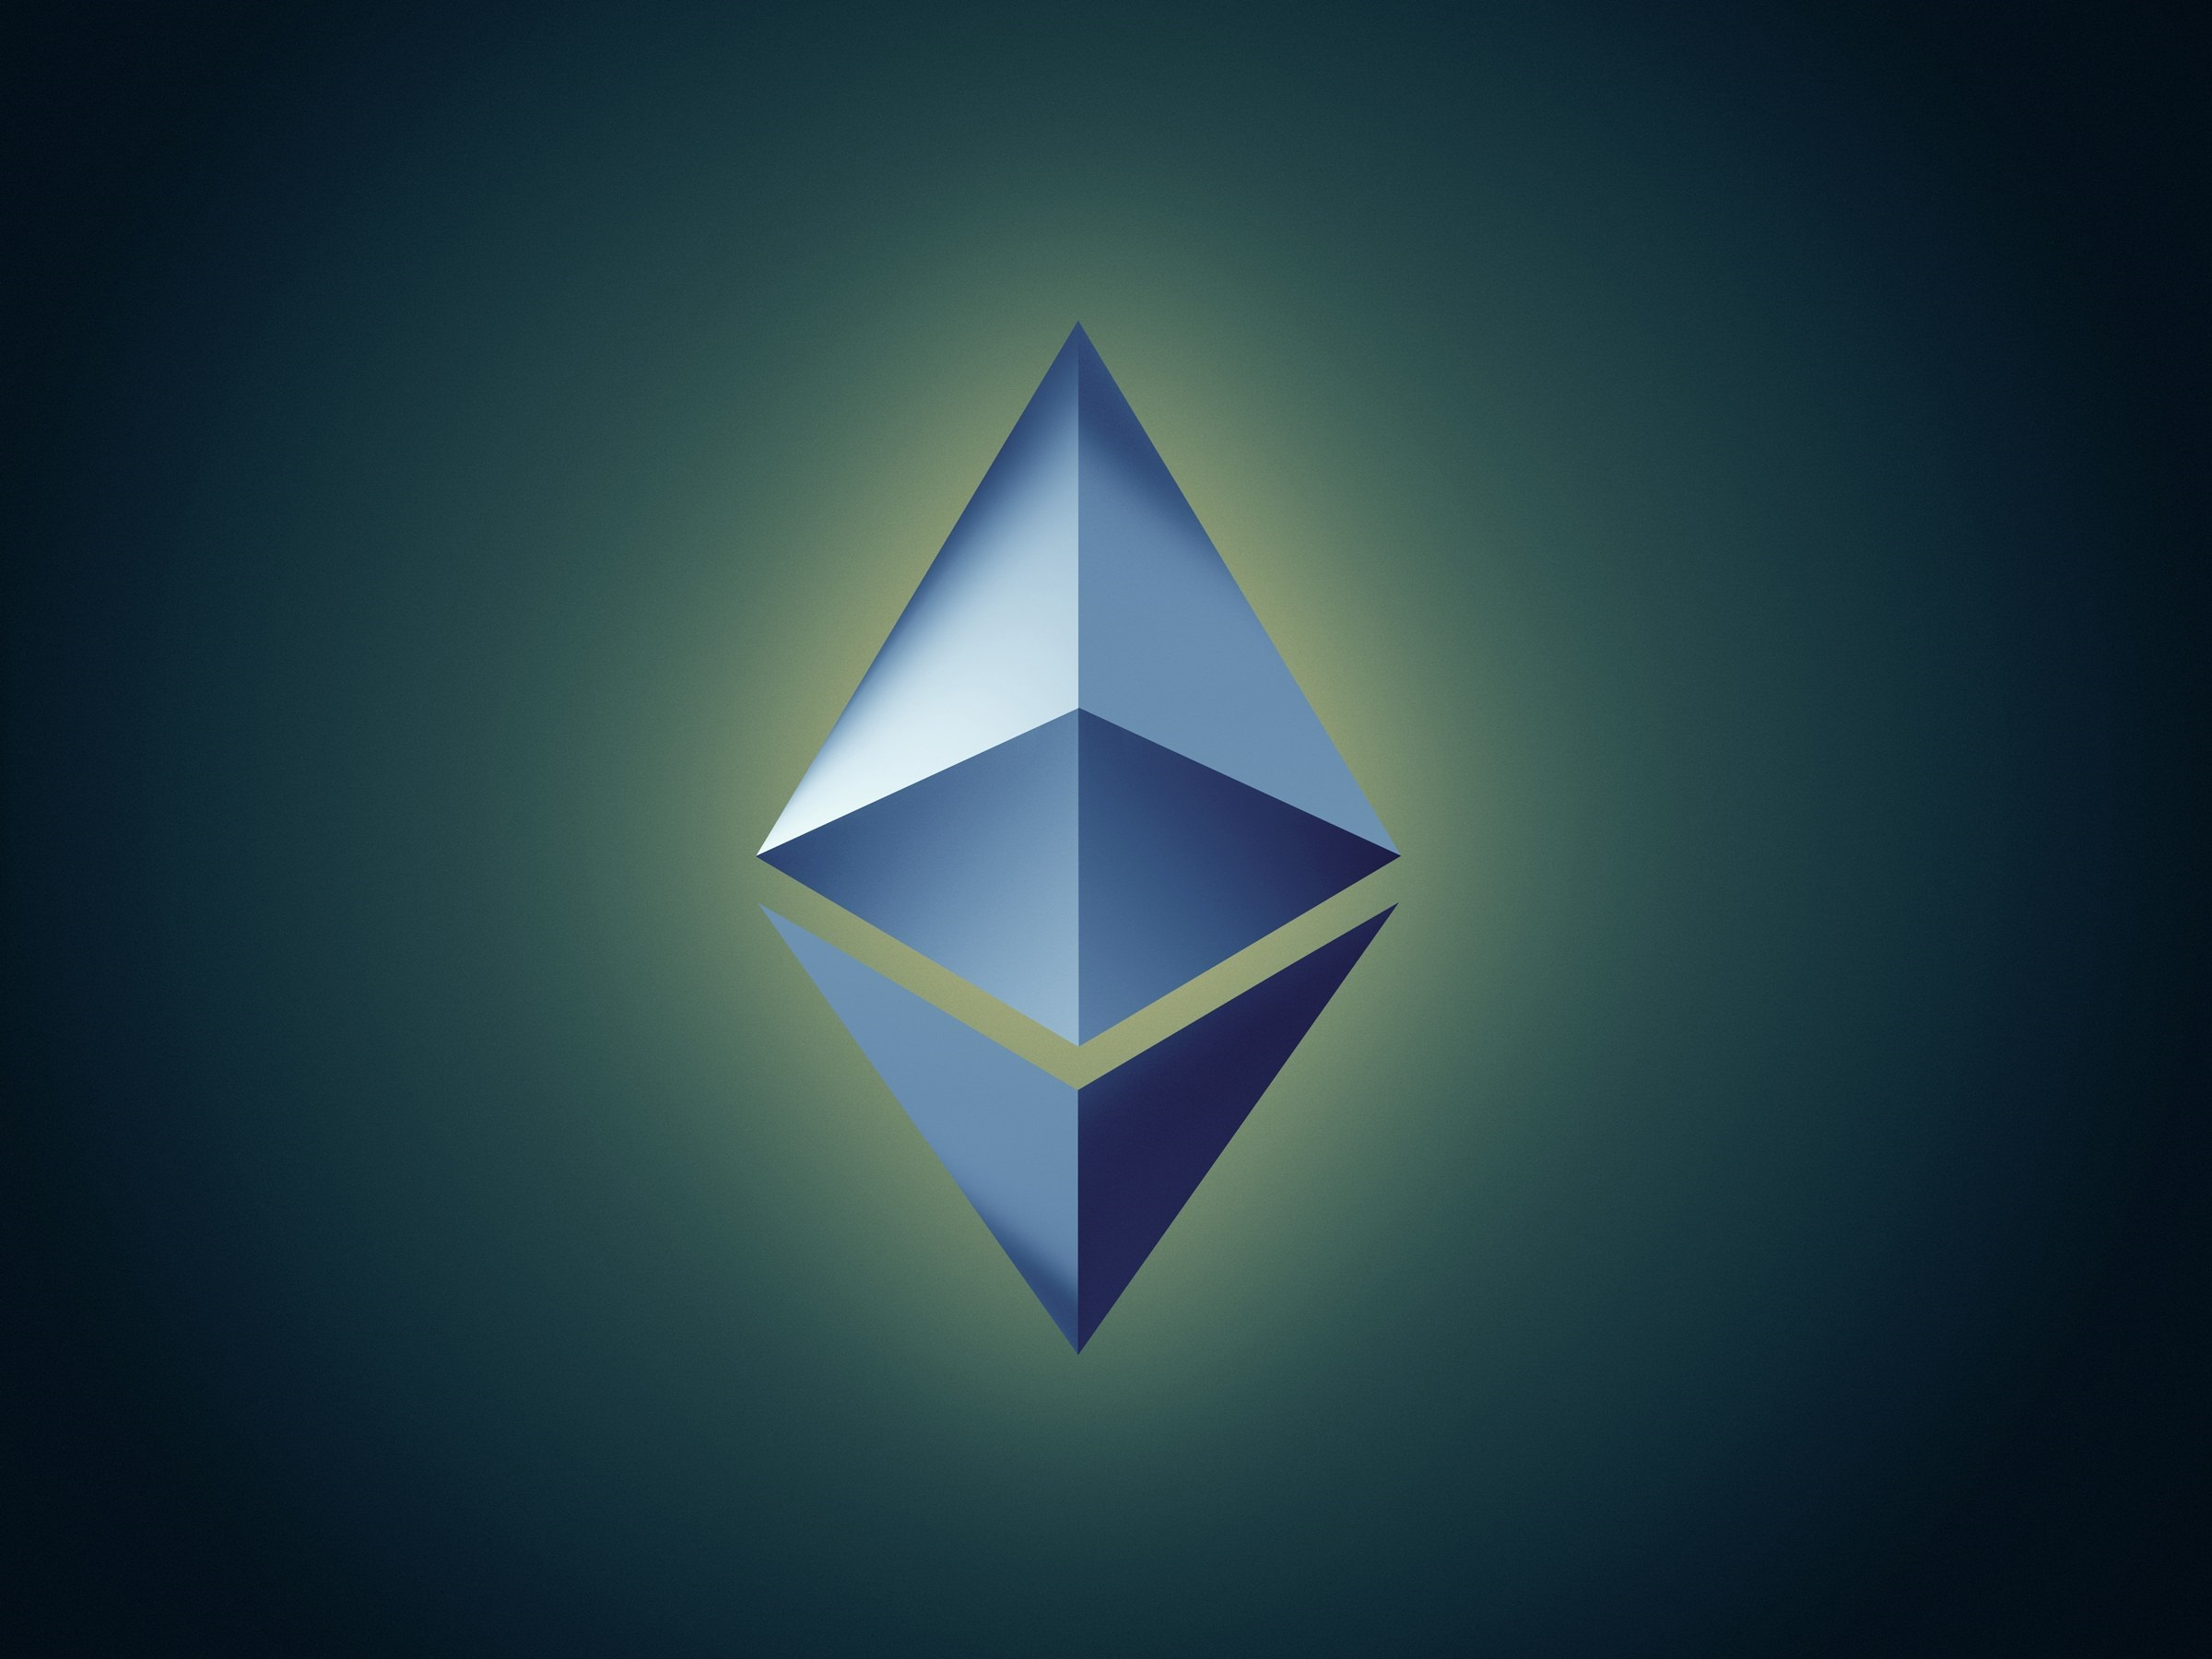 Ethereum price analysis and forecast (Friday, August 17): Some sparkles for ETH price this weekend